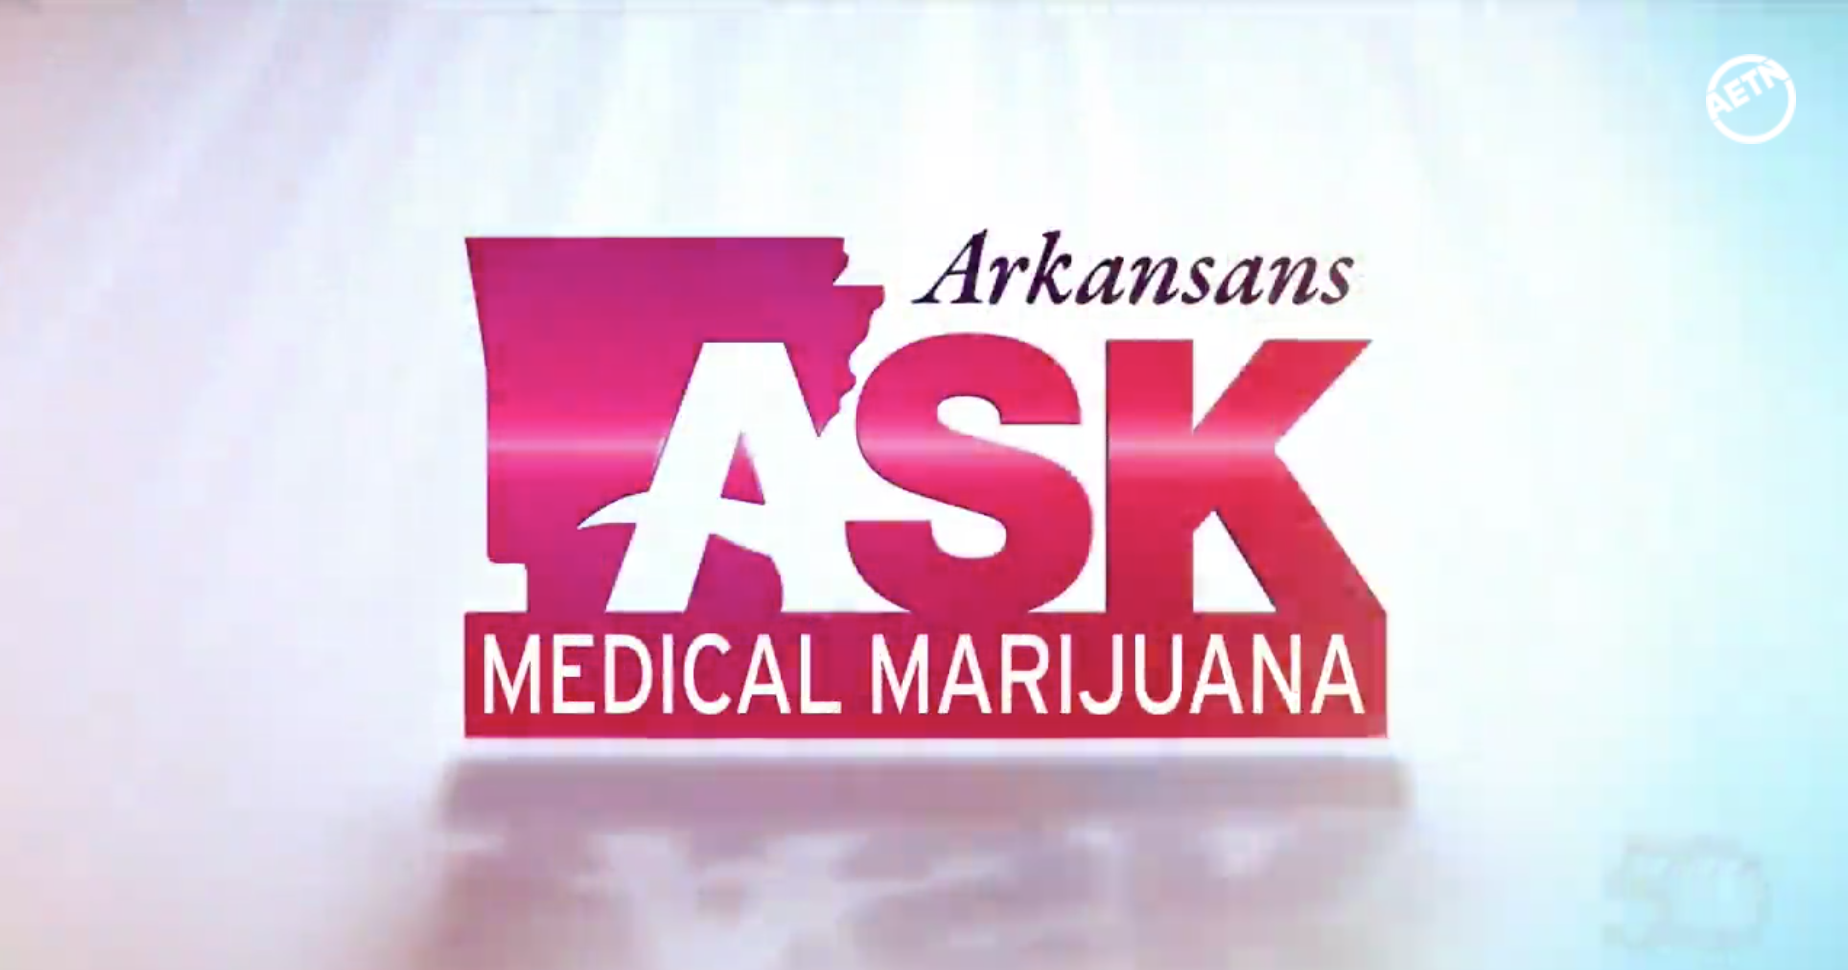 Watch the AETN Update on Arkansas Medical Marijuana